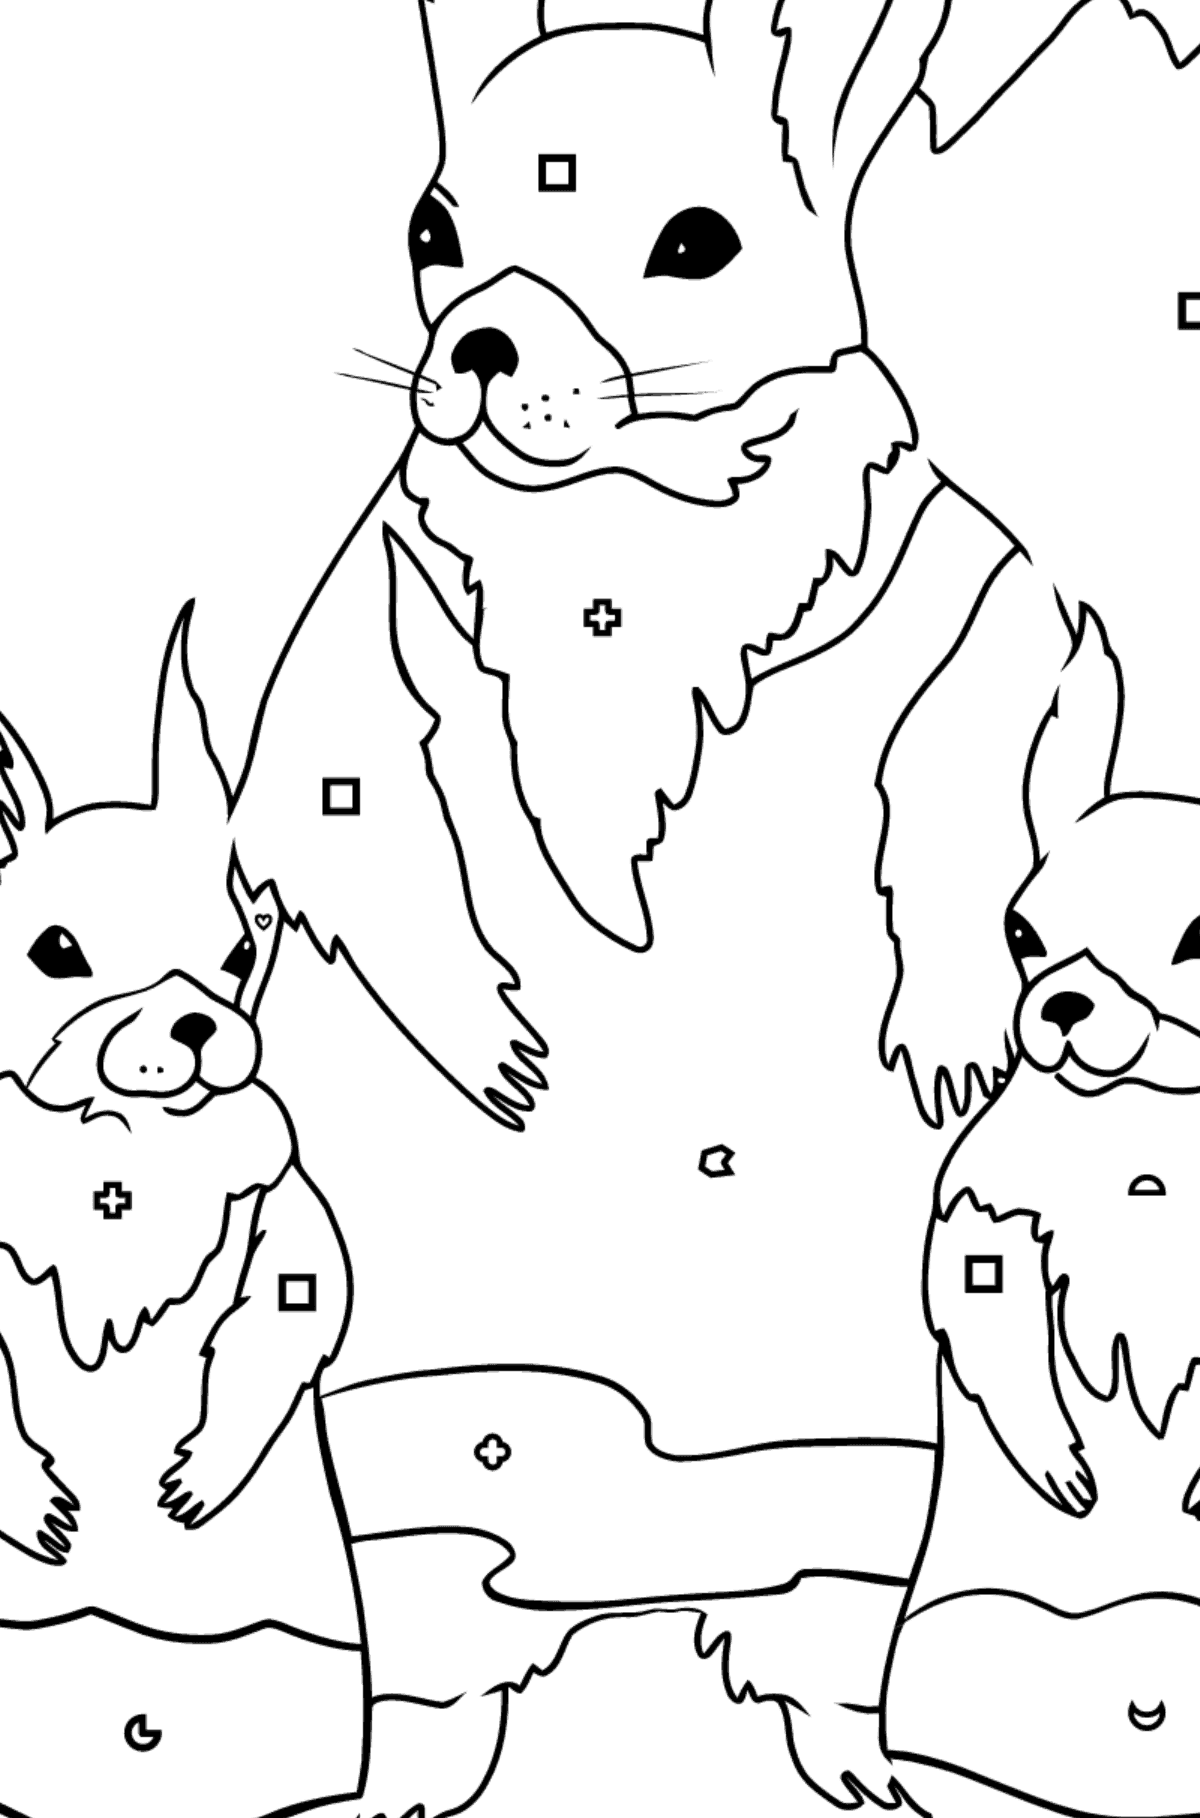 Spring Coloring Page - Squirrels are Preparing to Greet the Sun for Children  - Color by Geometric Shapes